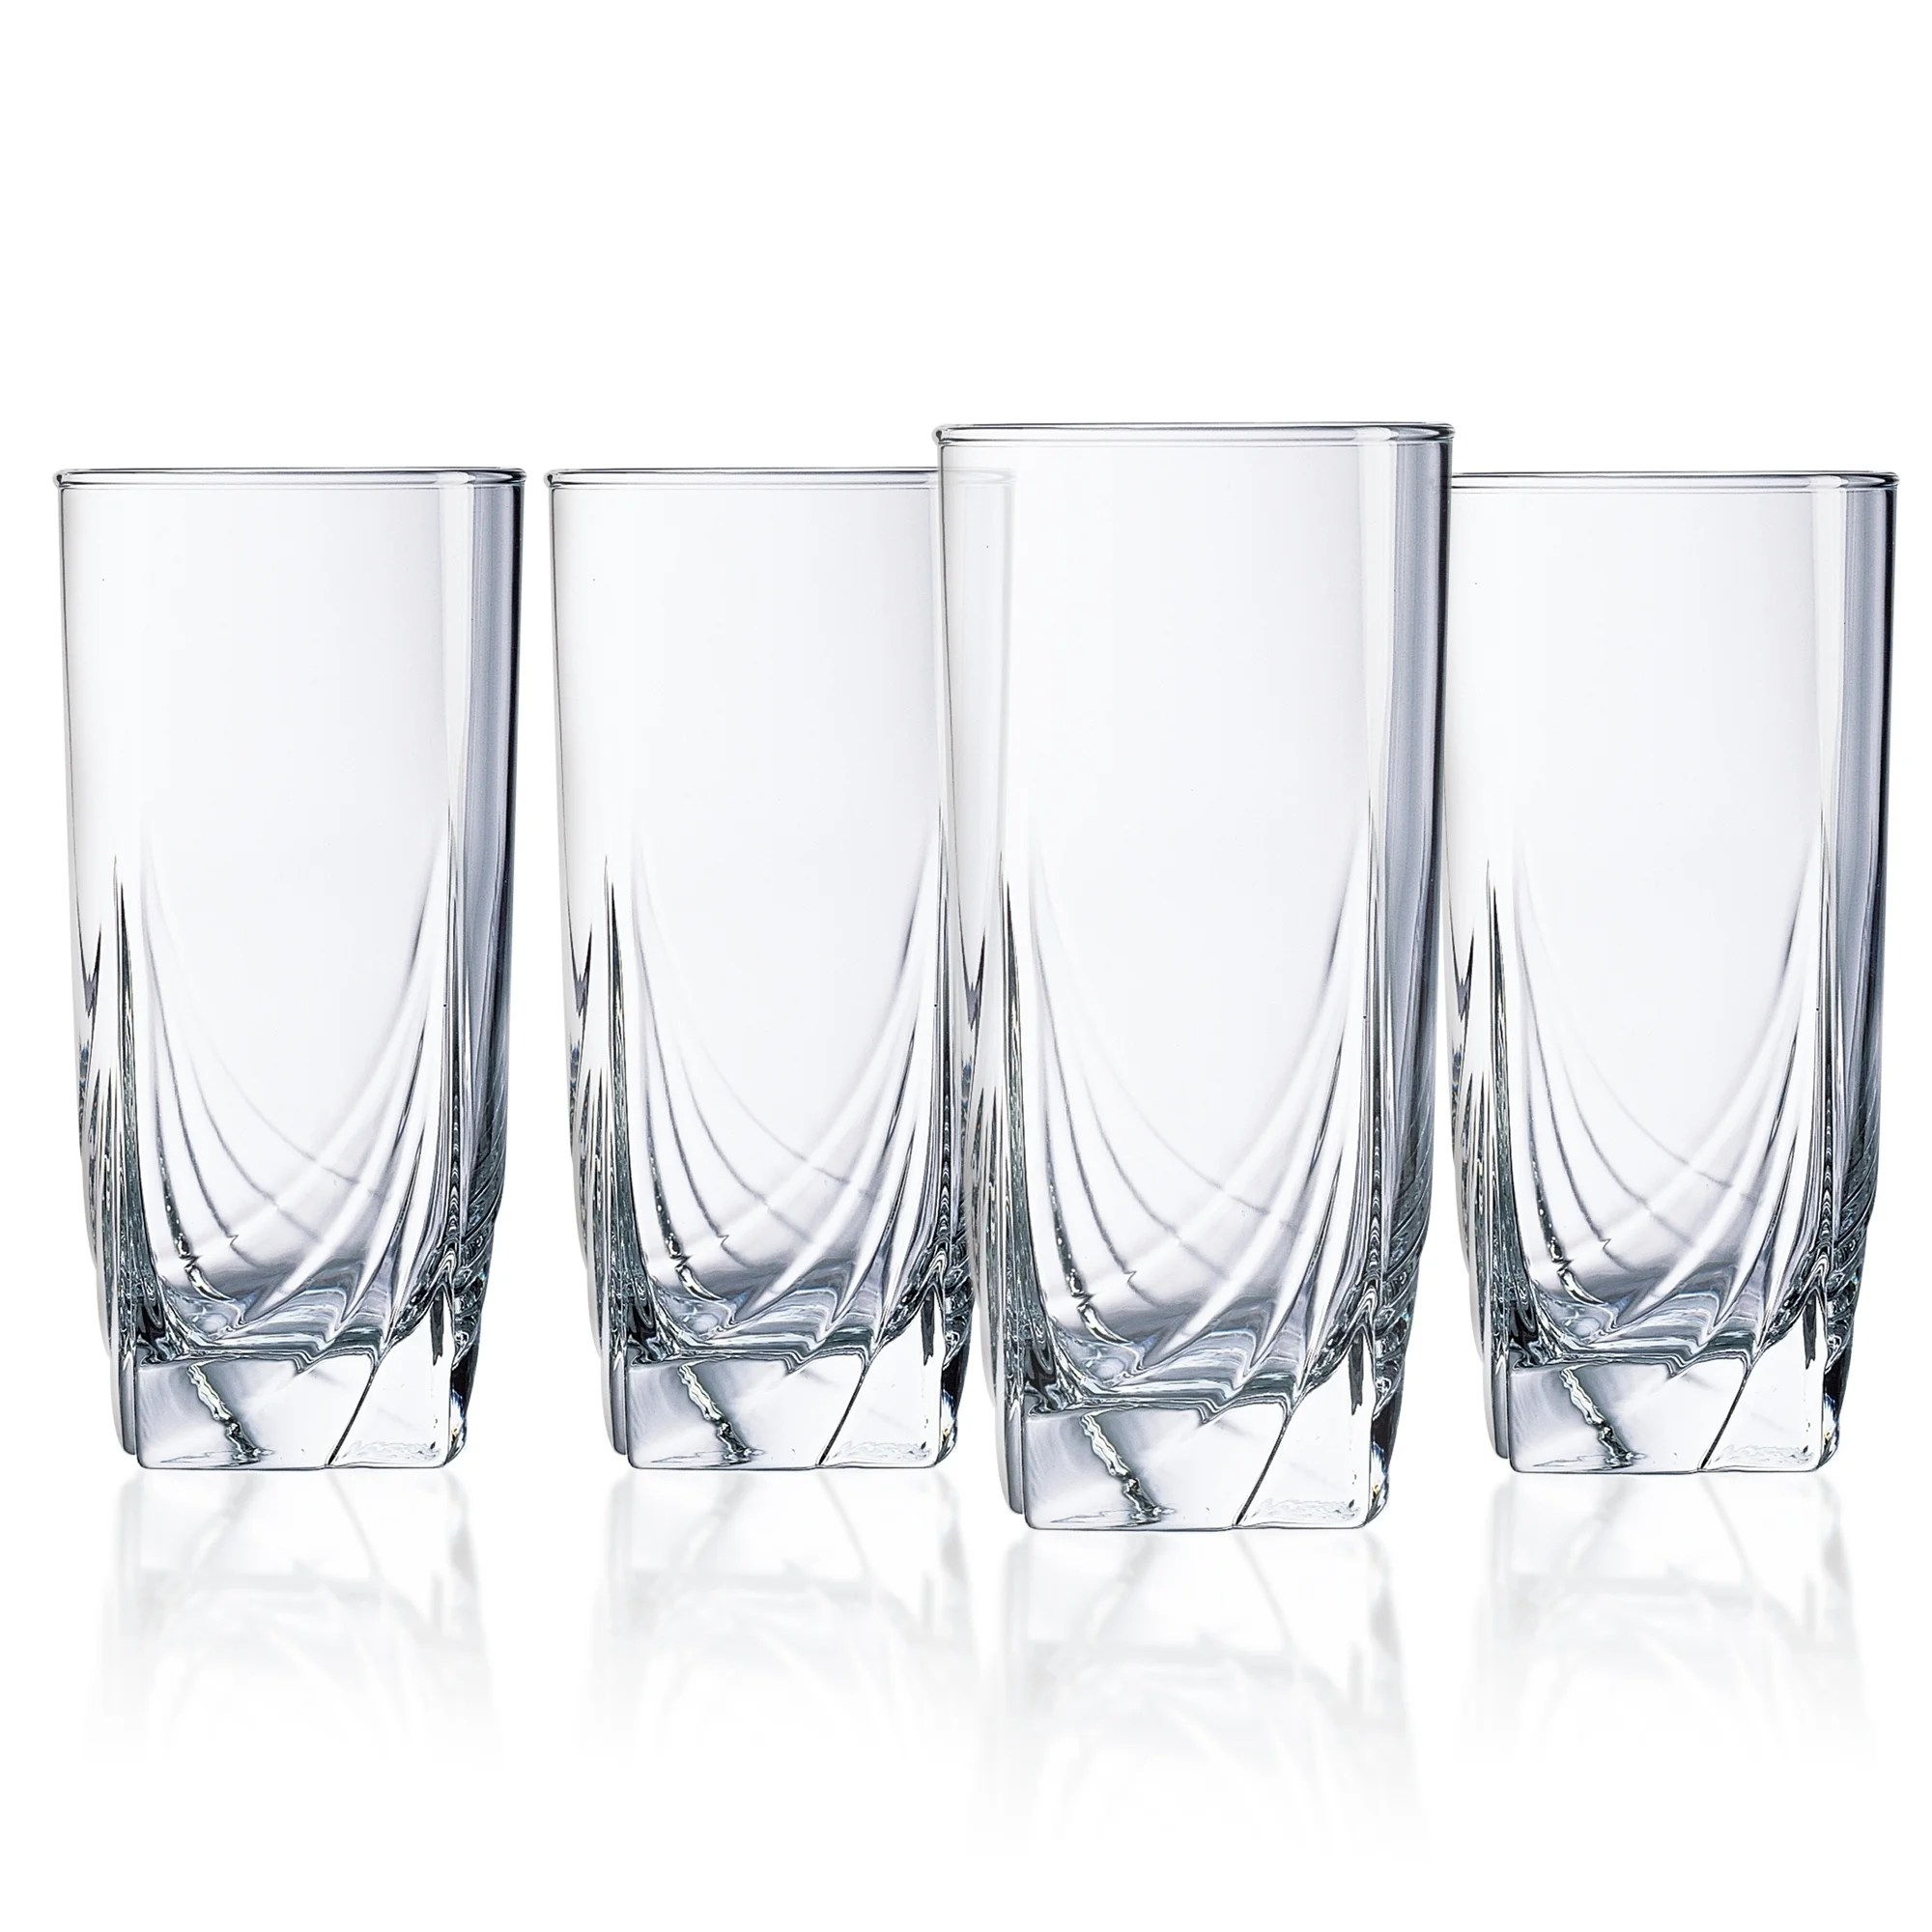 Luminarc Glass Luminarc Ascot 16 5 Ounce Cooler Glass Set Of 4